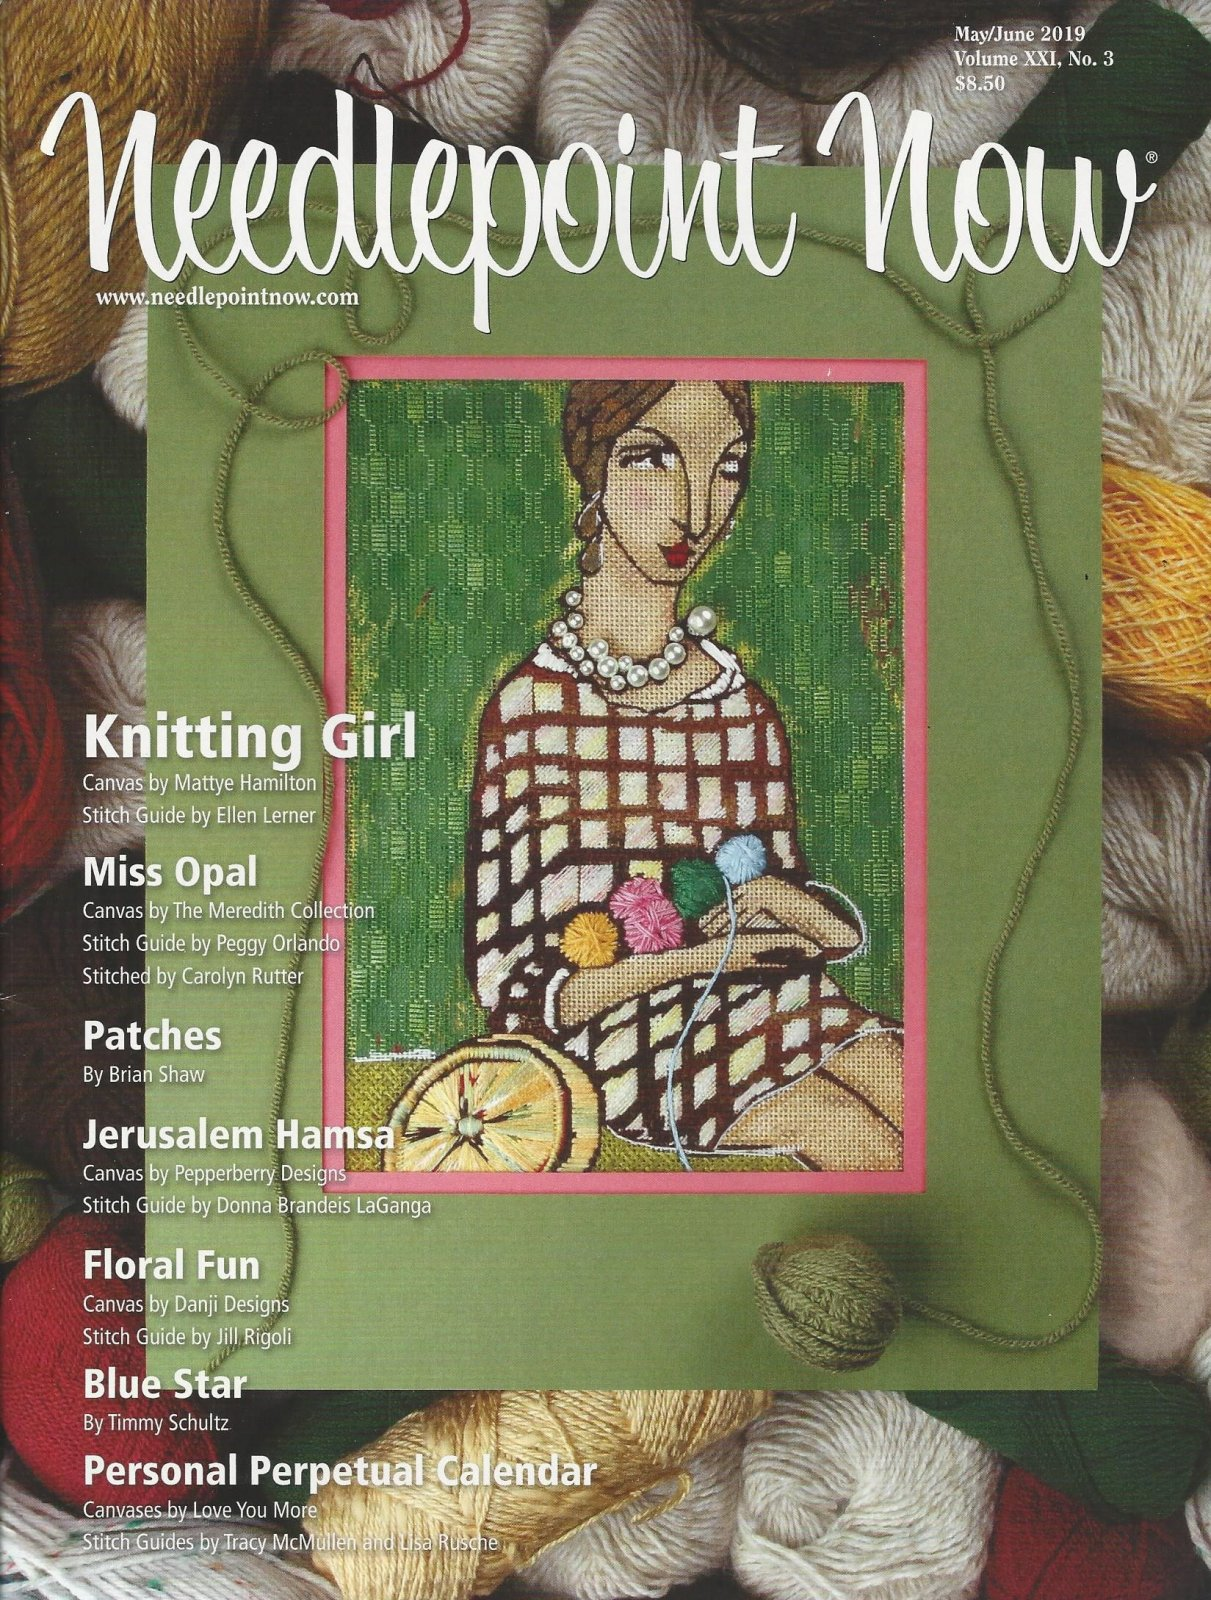 MAY/JUNE 2019 NEEDLEPOINT NOW